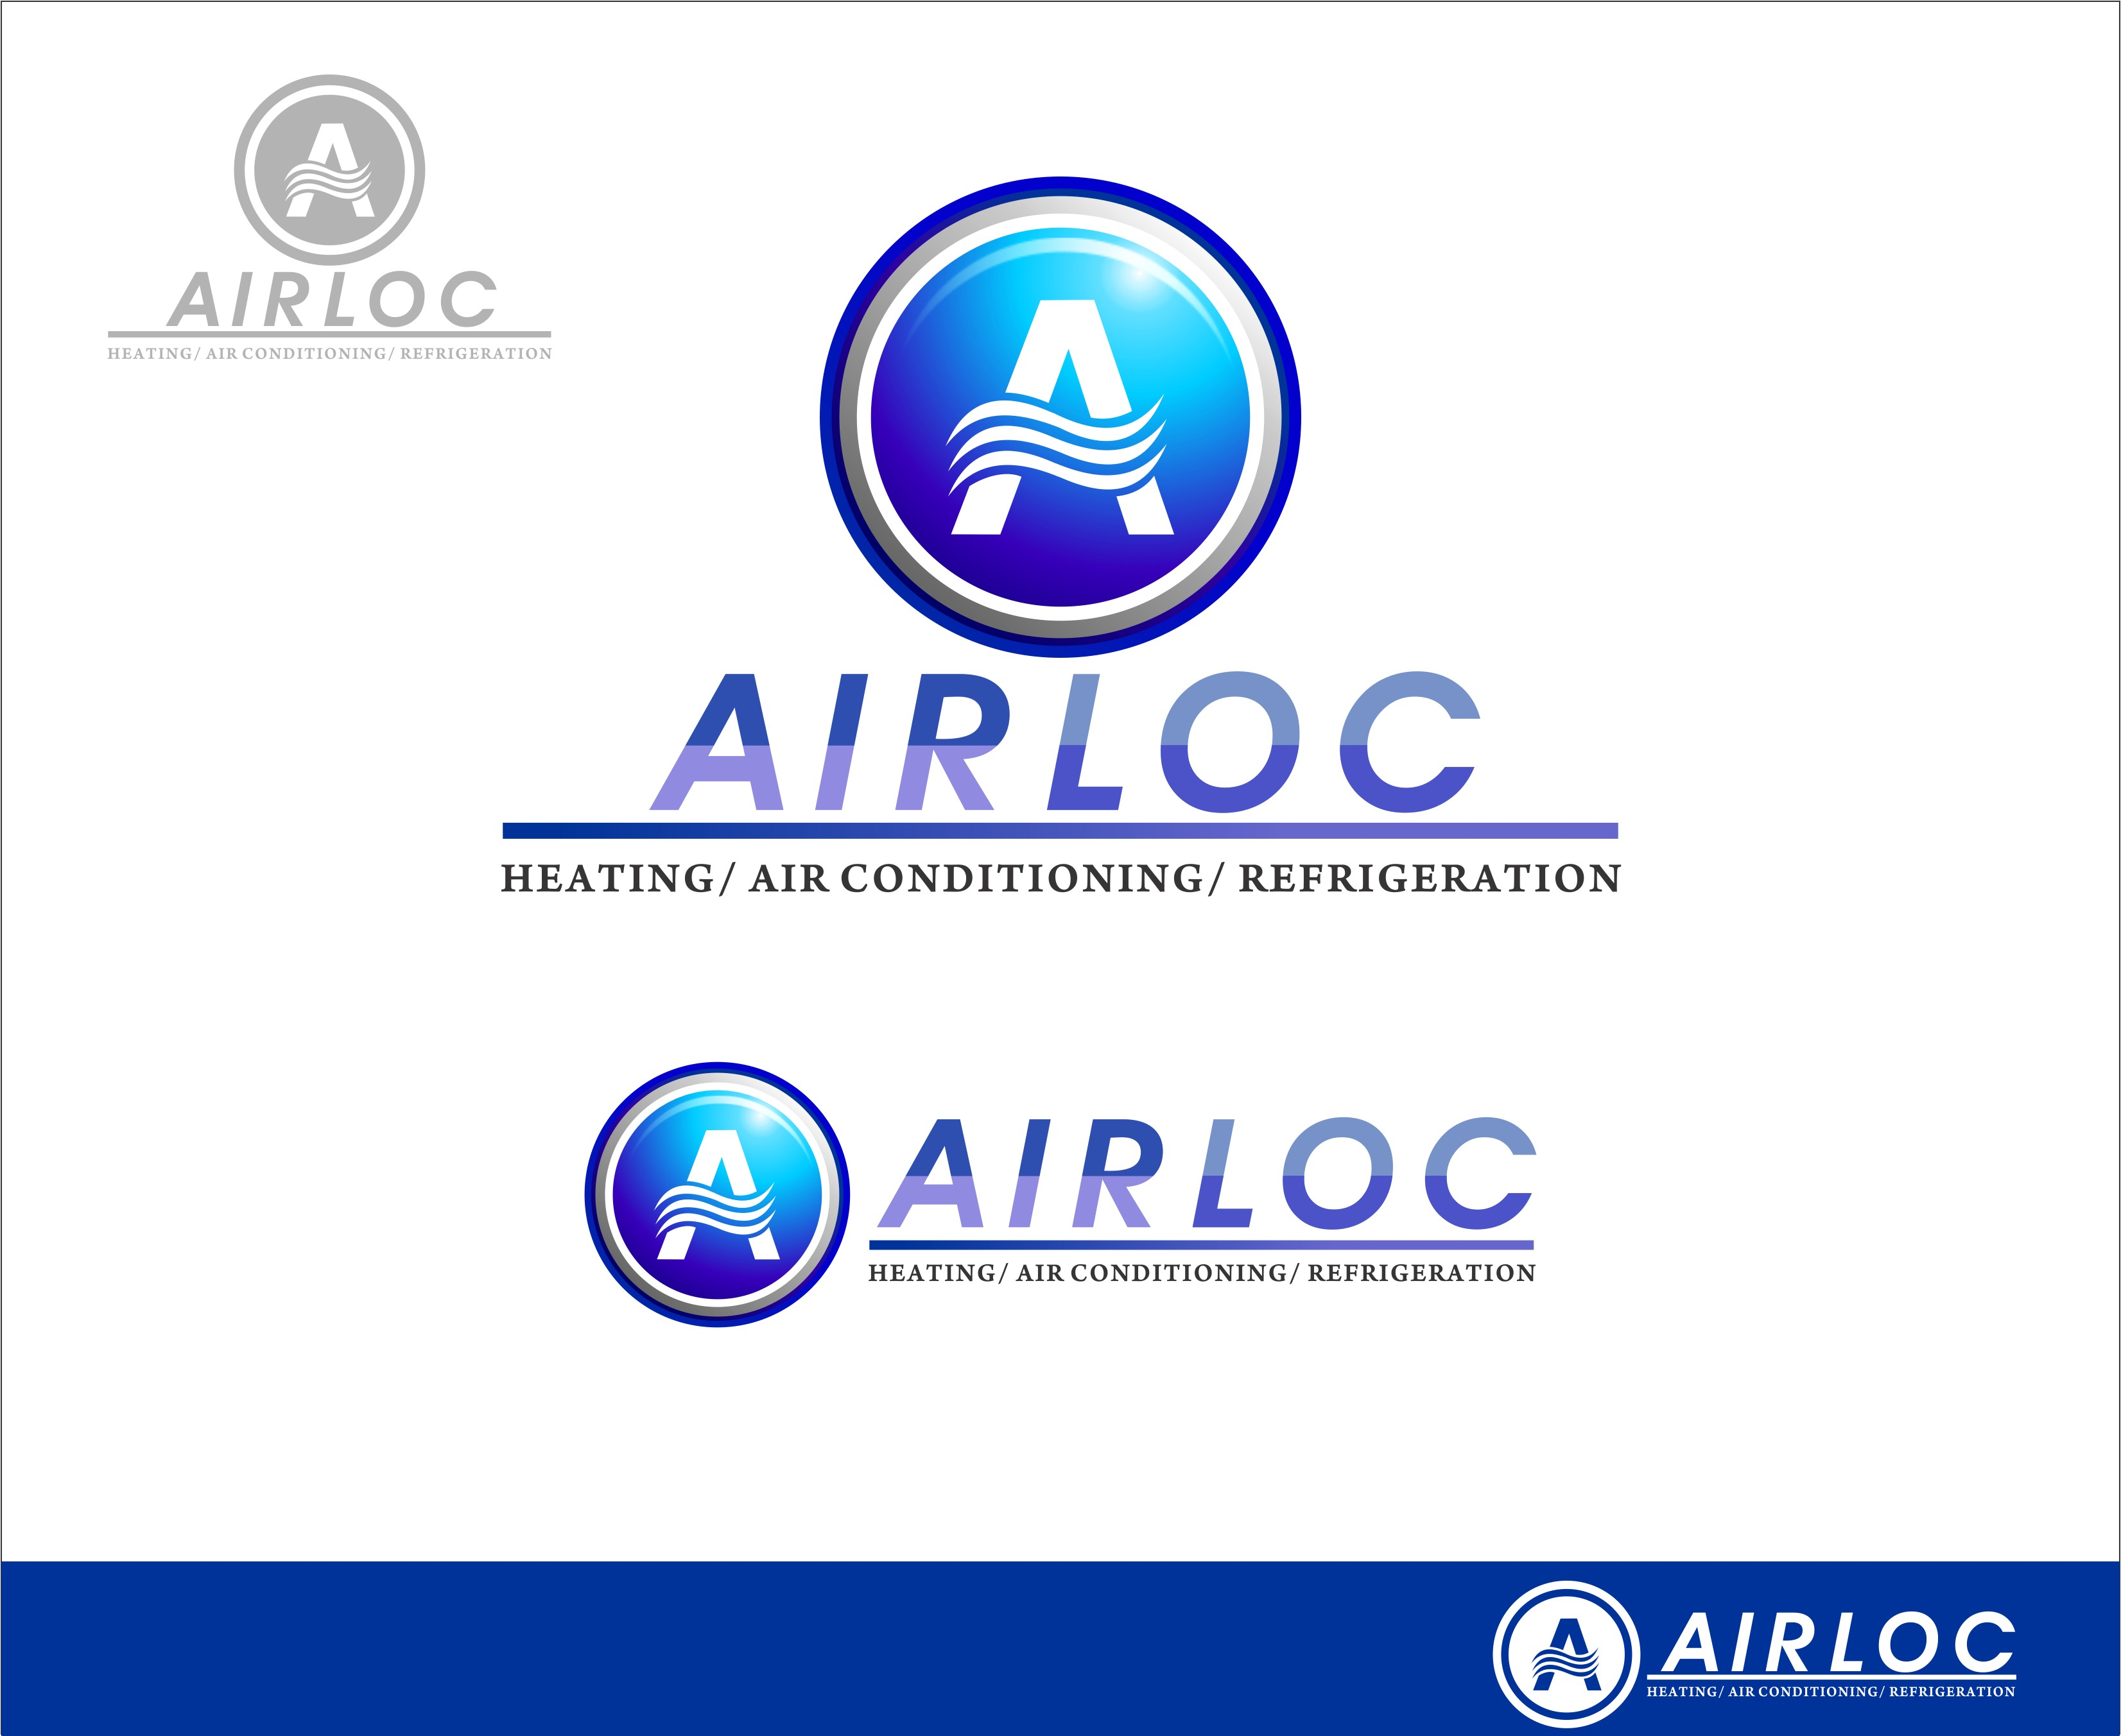 Logo Design by Mhon_Rose - Entry No. 45 in the Logo Design Contest Airloc Logo Design.